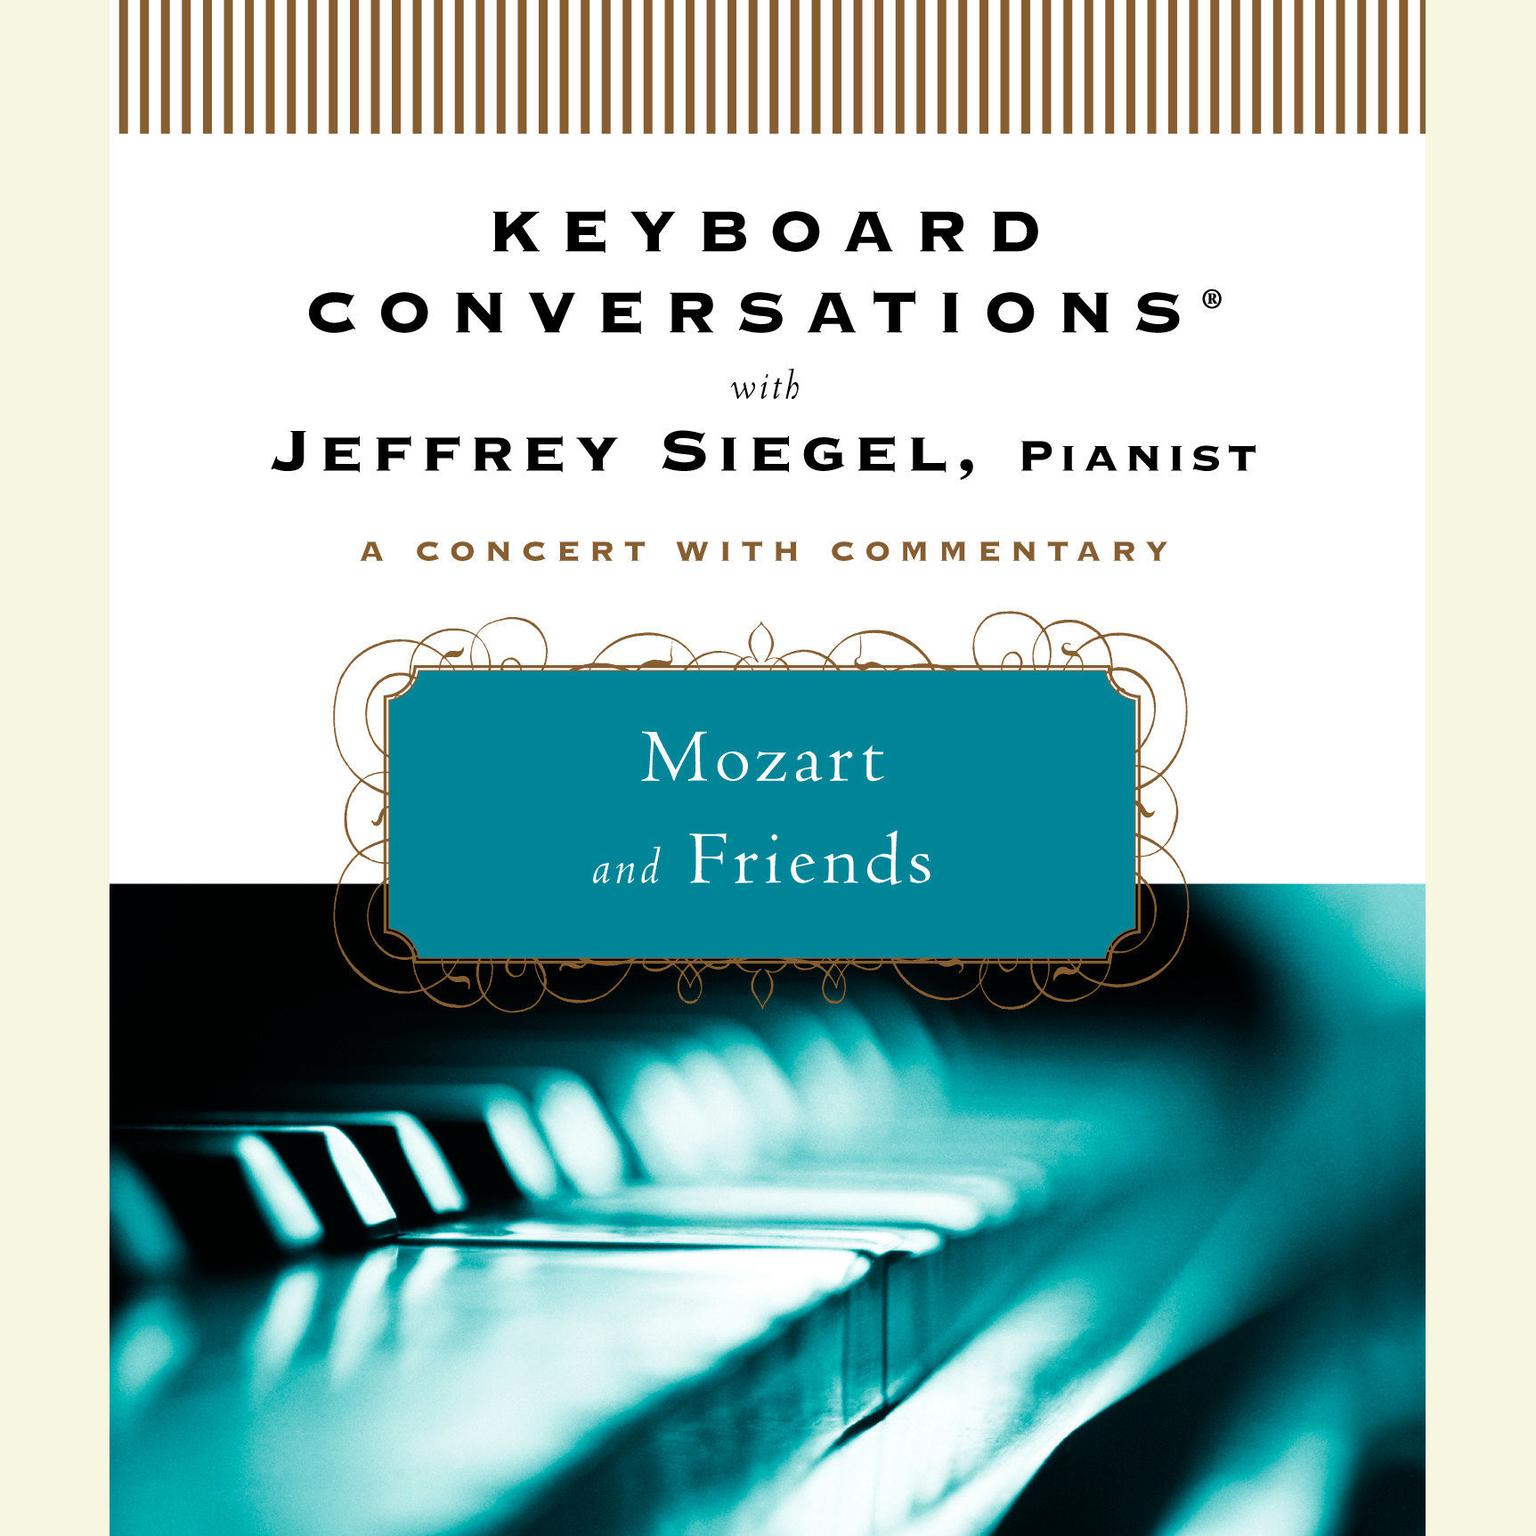 Printable Keyboard Conversations®: Mozart and Friends Audiobook Cover Art